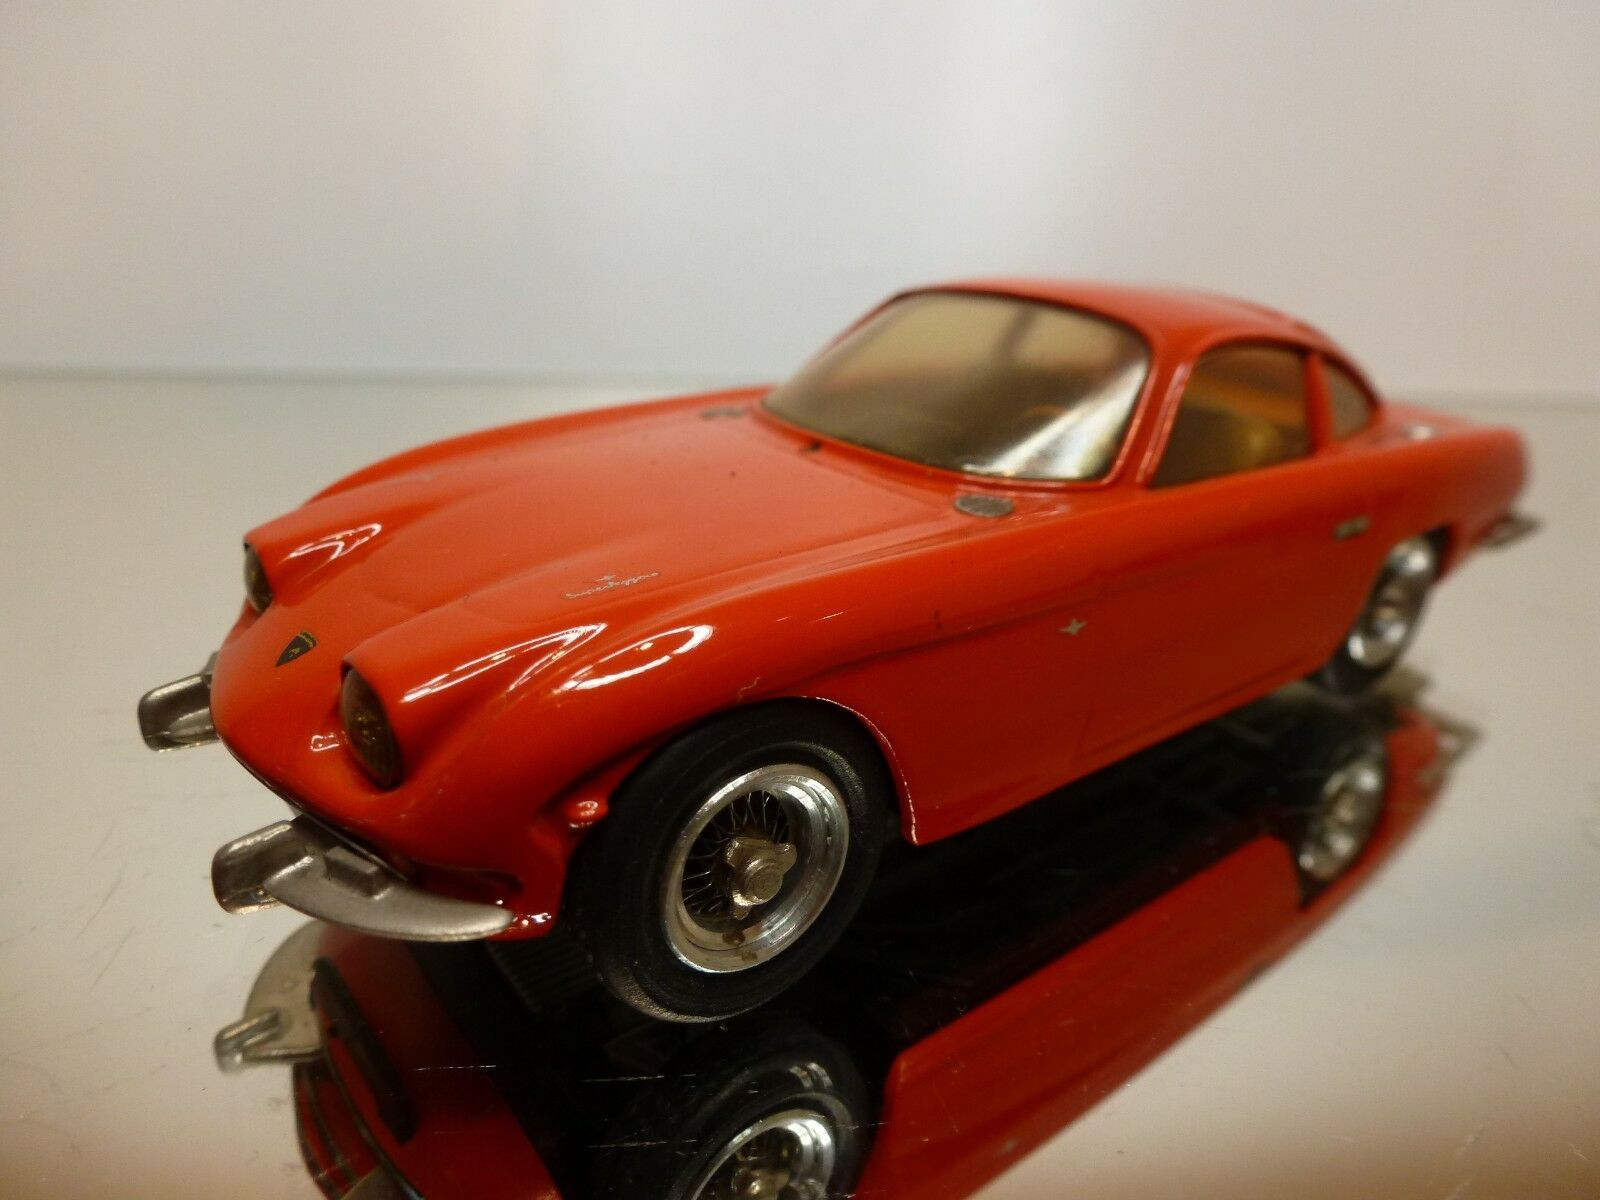 WESTERN MODELS LAMBORGHINI 350GT - SMALL WHEELS 1 43 - GOOD CONDITION - 2